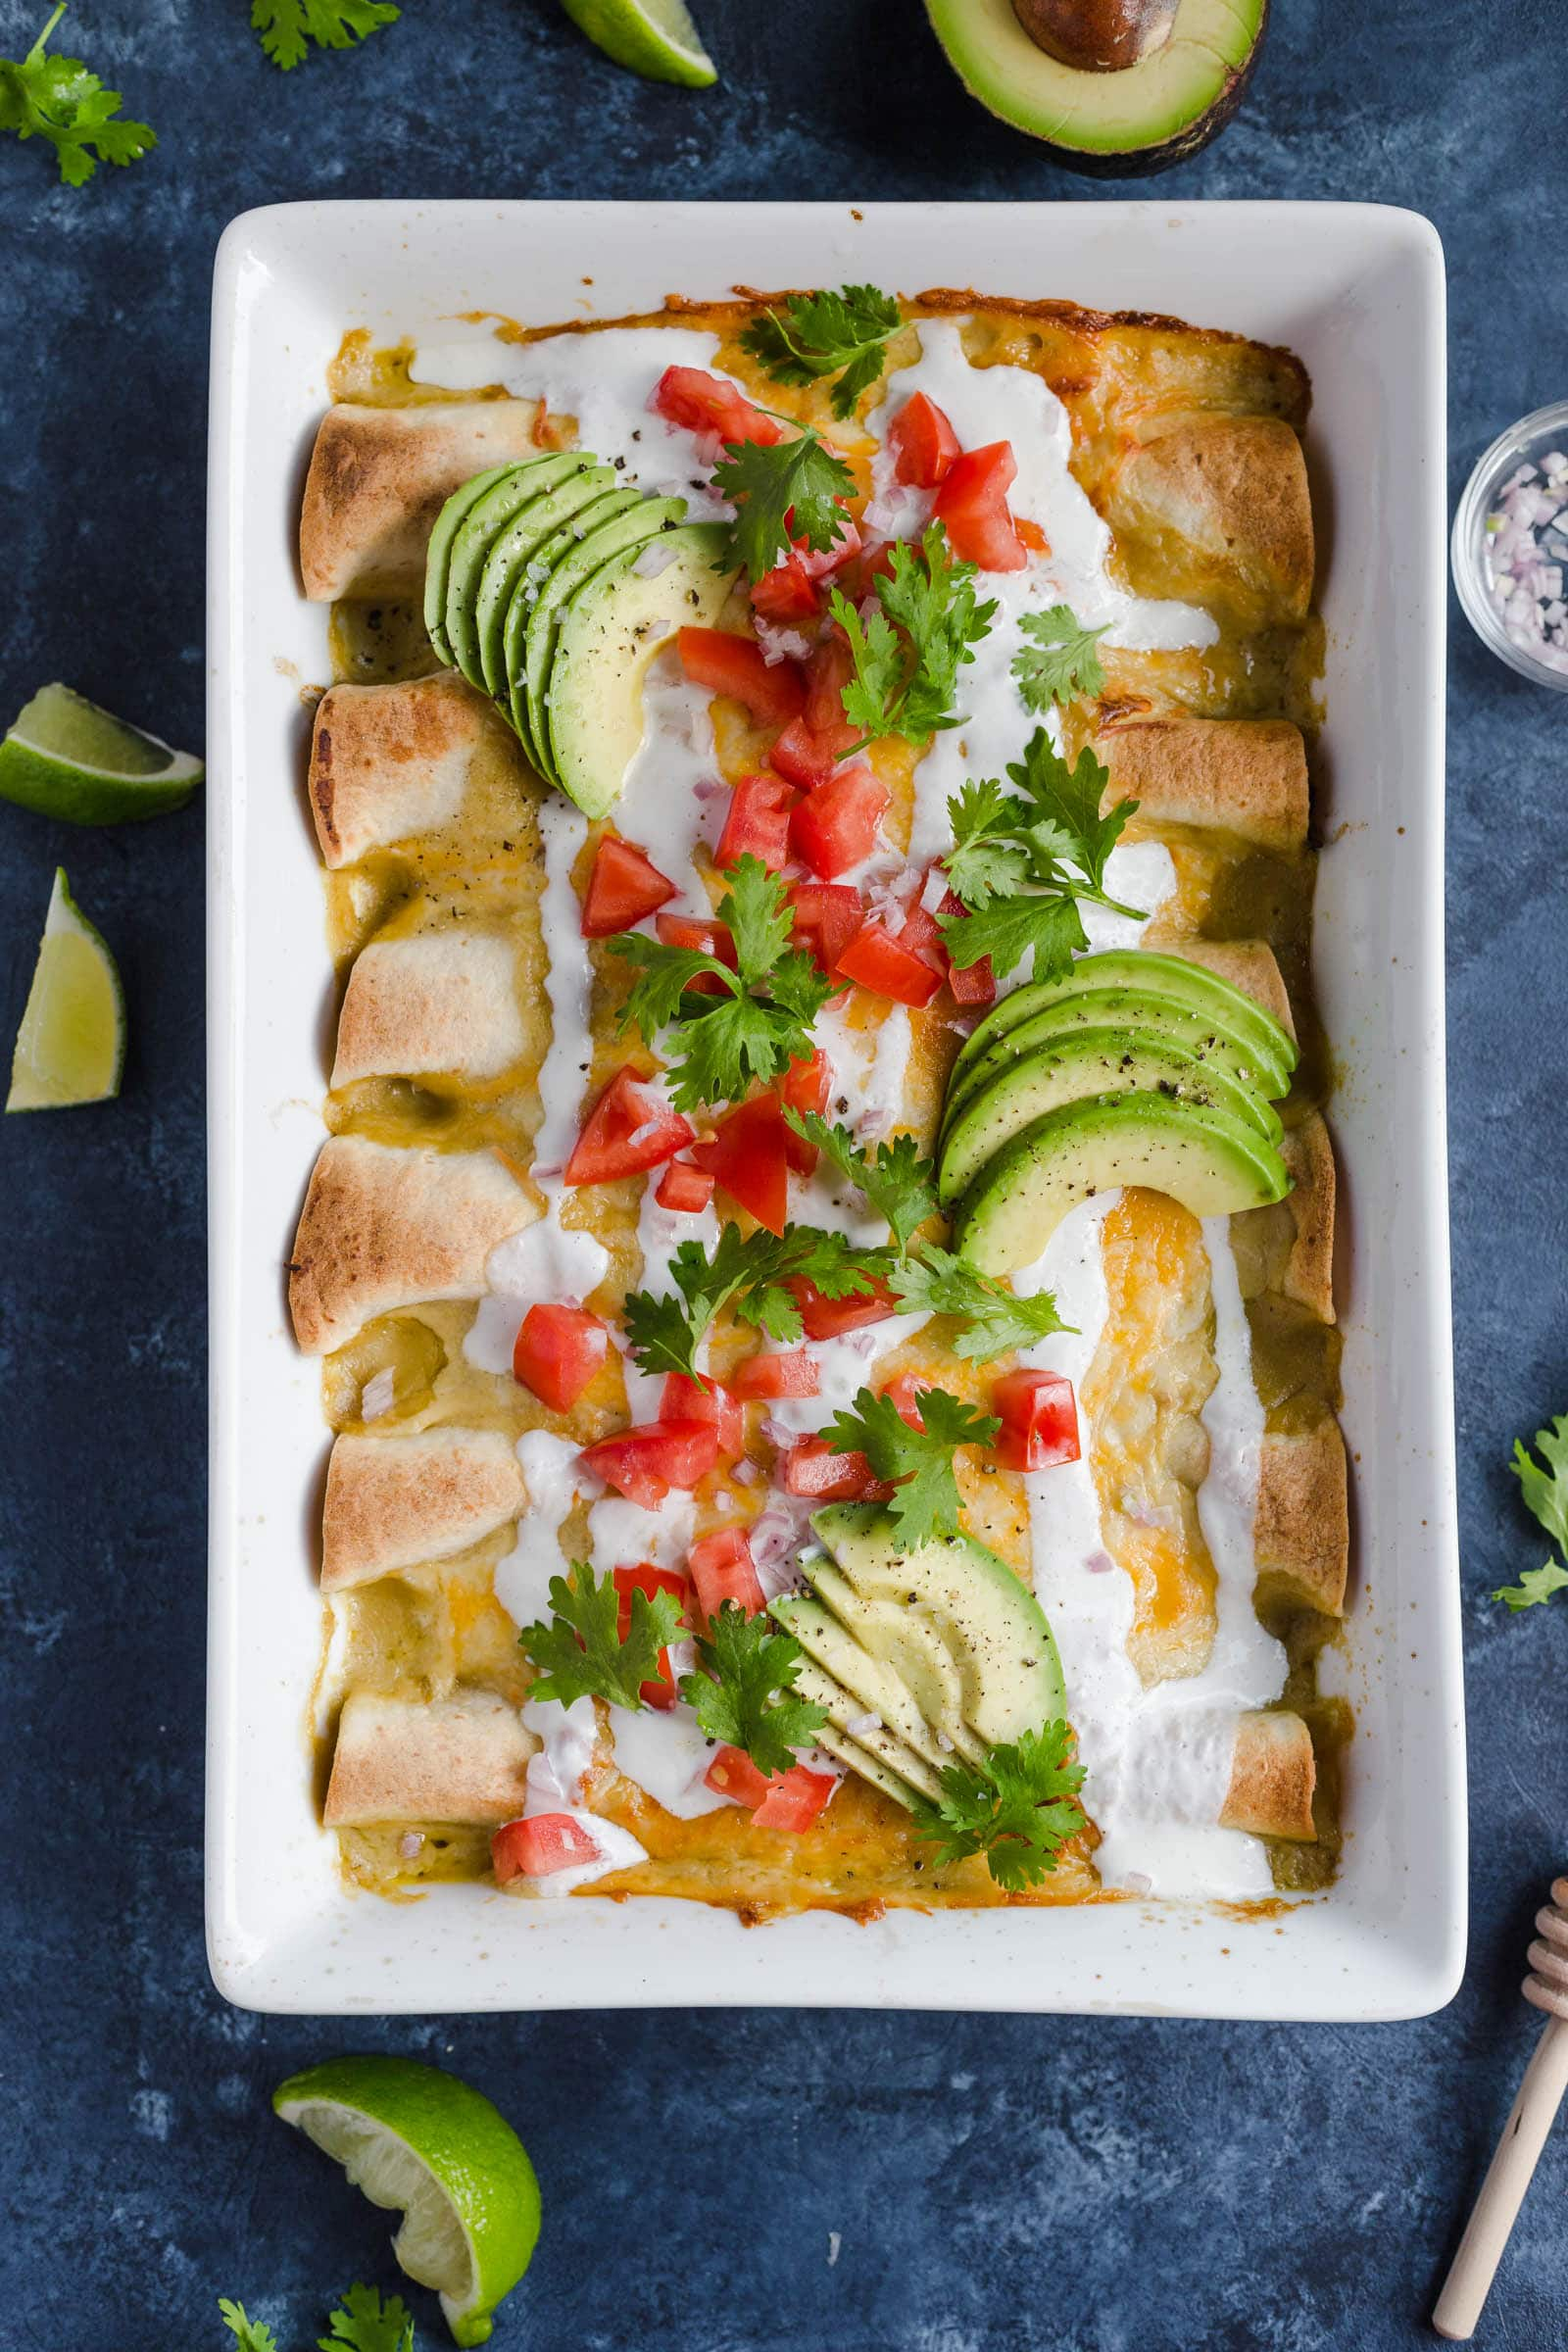 A baking dish full of easy chicken enchiladas made with cheese, sour cream, enchilada sauce, and more